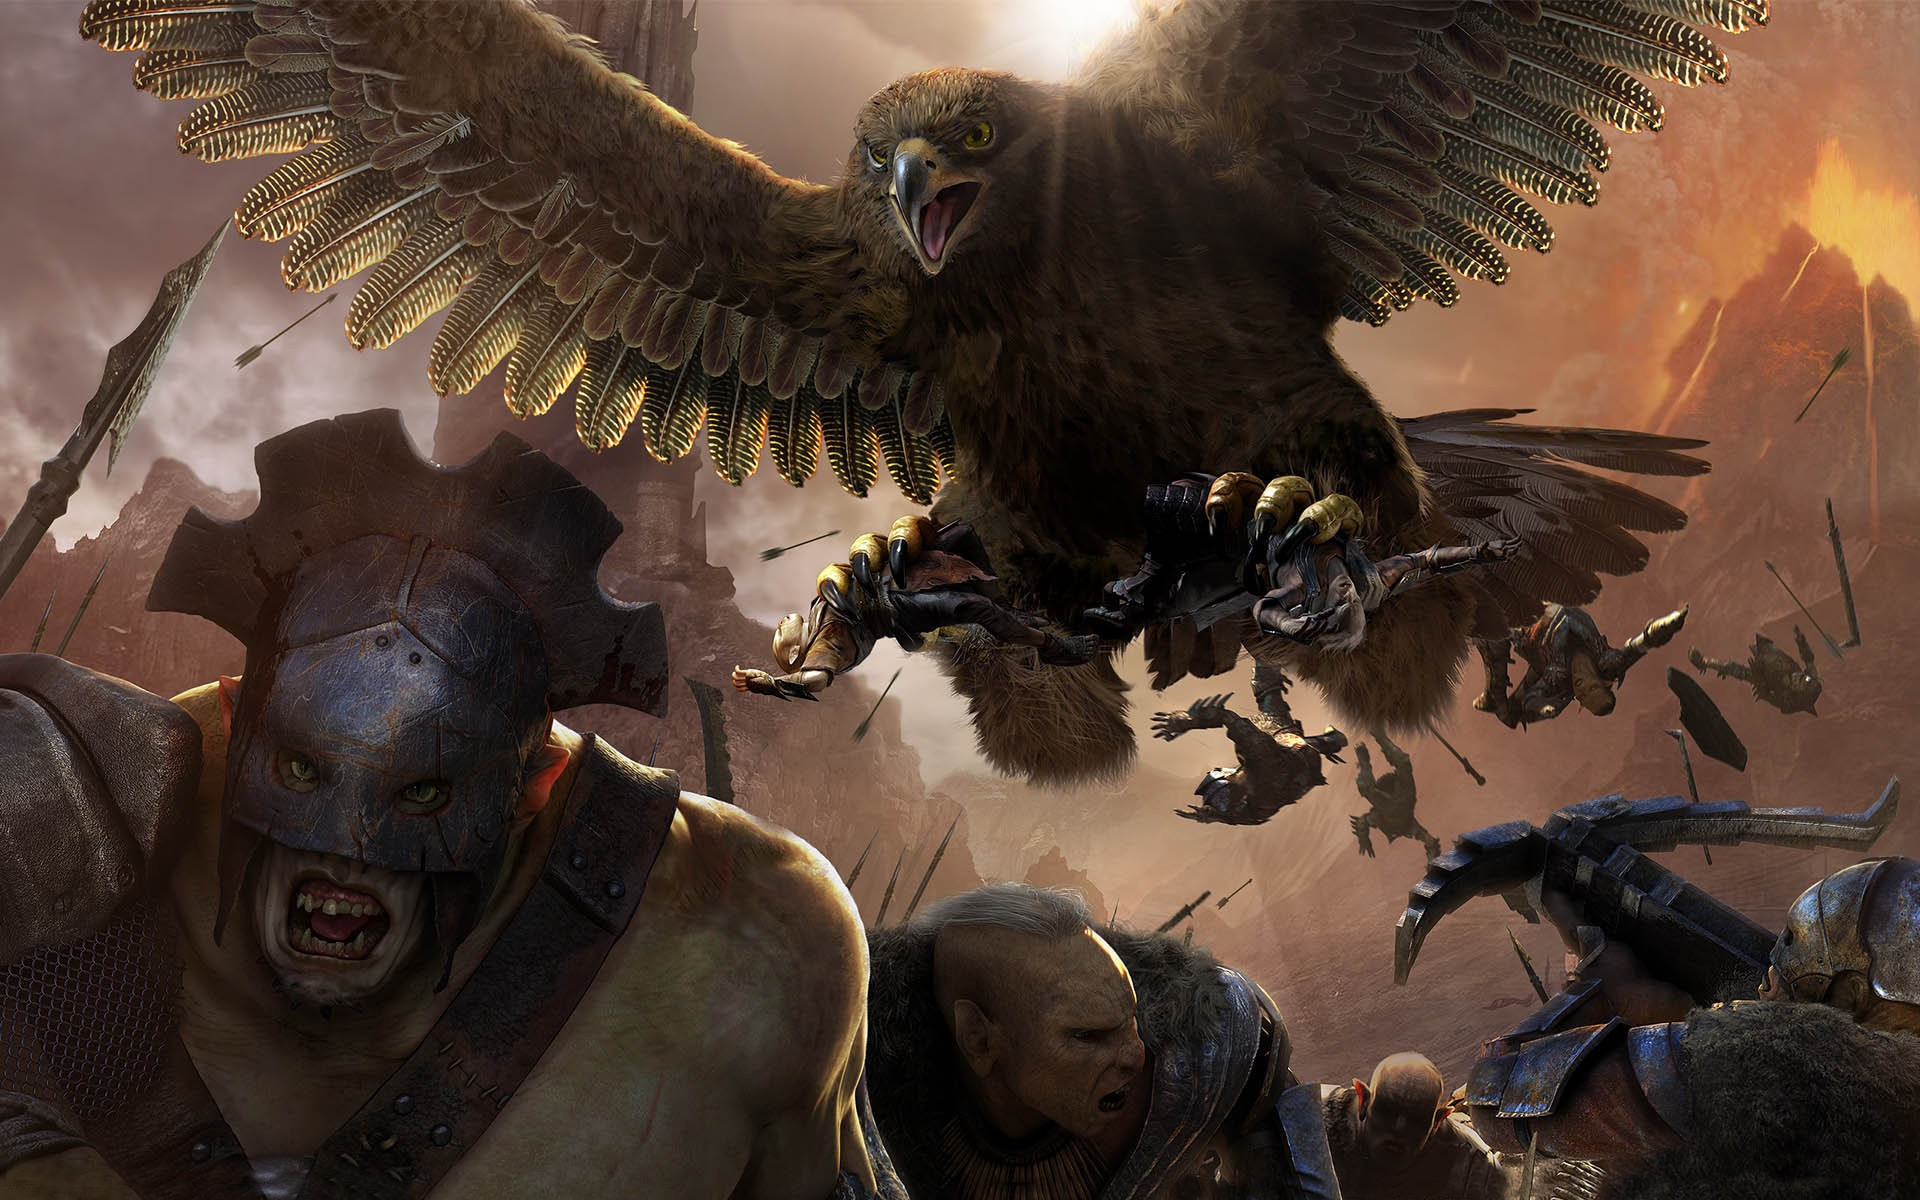 Eagle_attacking_orcs.jpeg